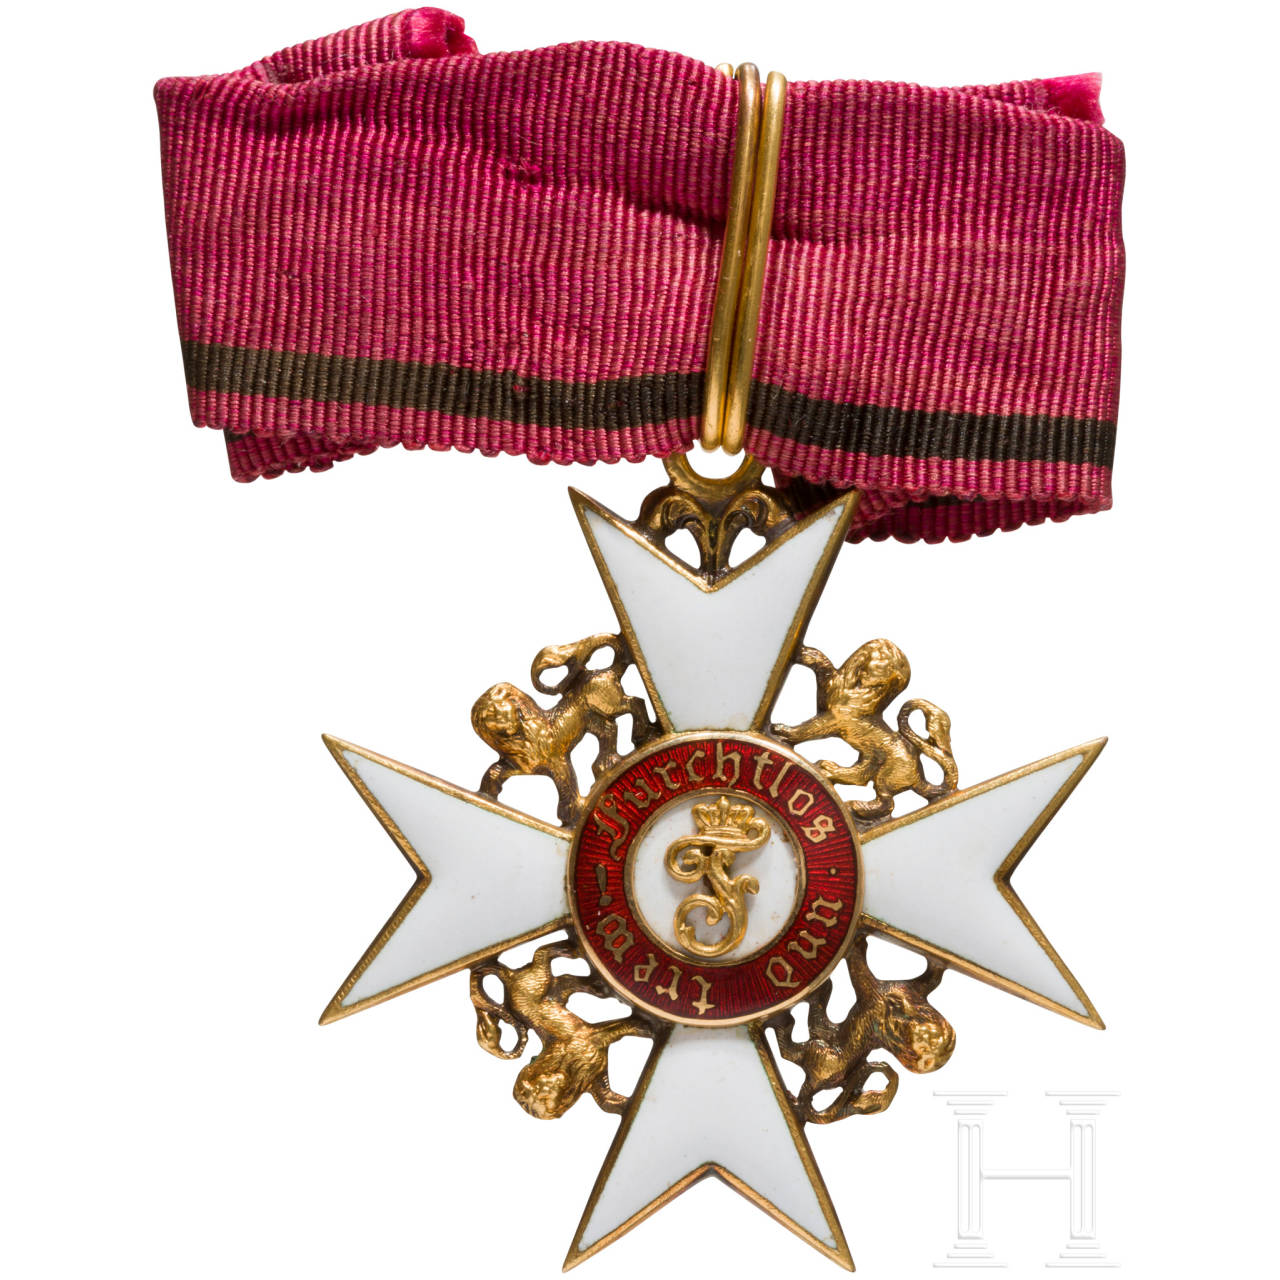 Order of the Wurttemberg Crown - Knight's Cross with lion